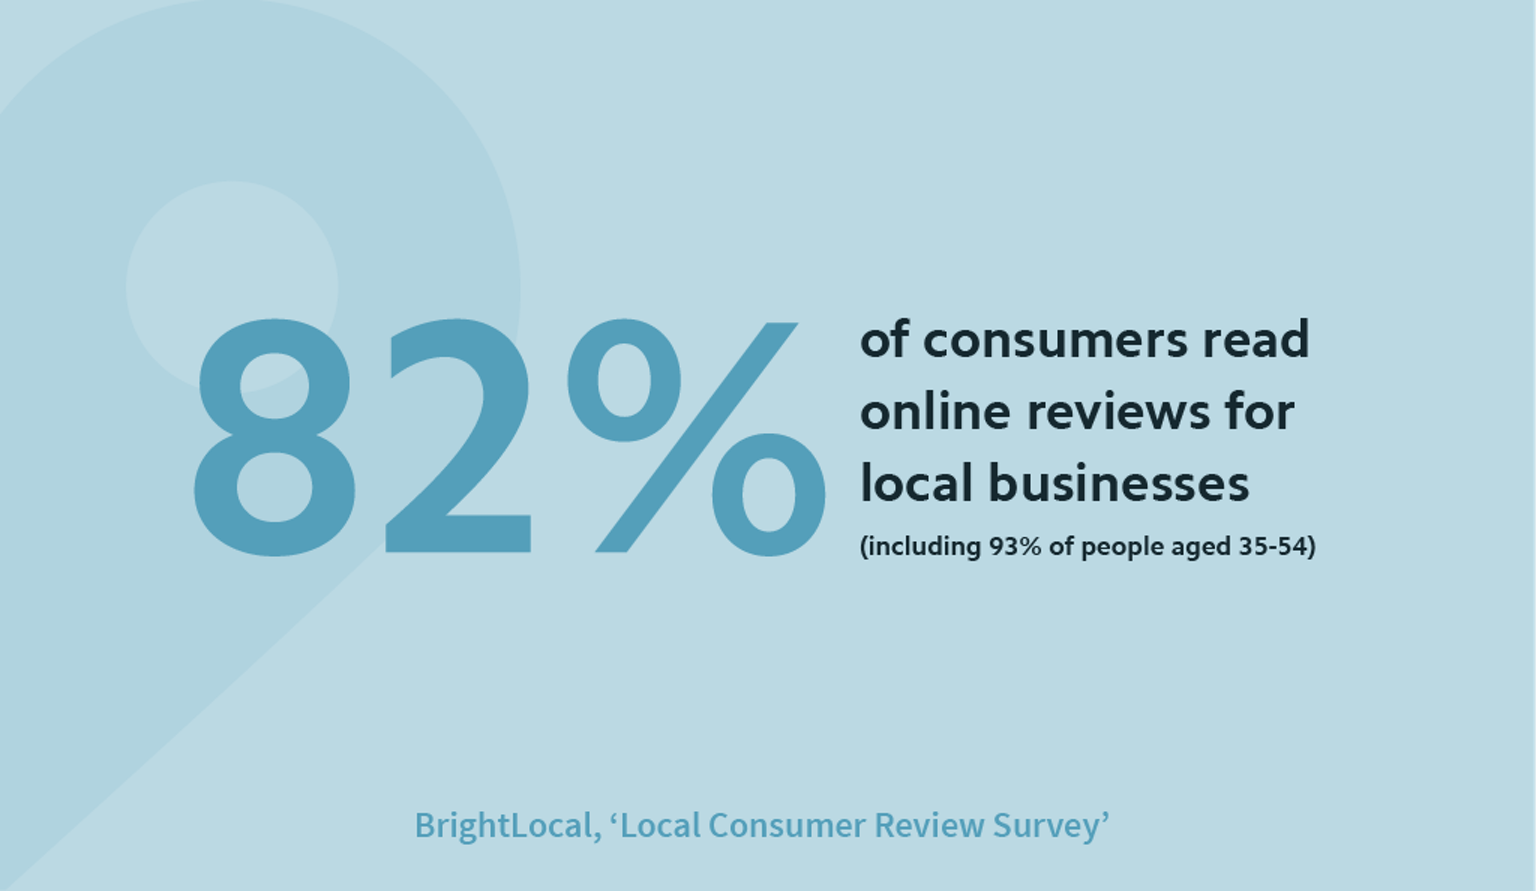 brightlocal - landing page stats